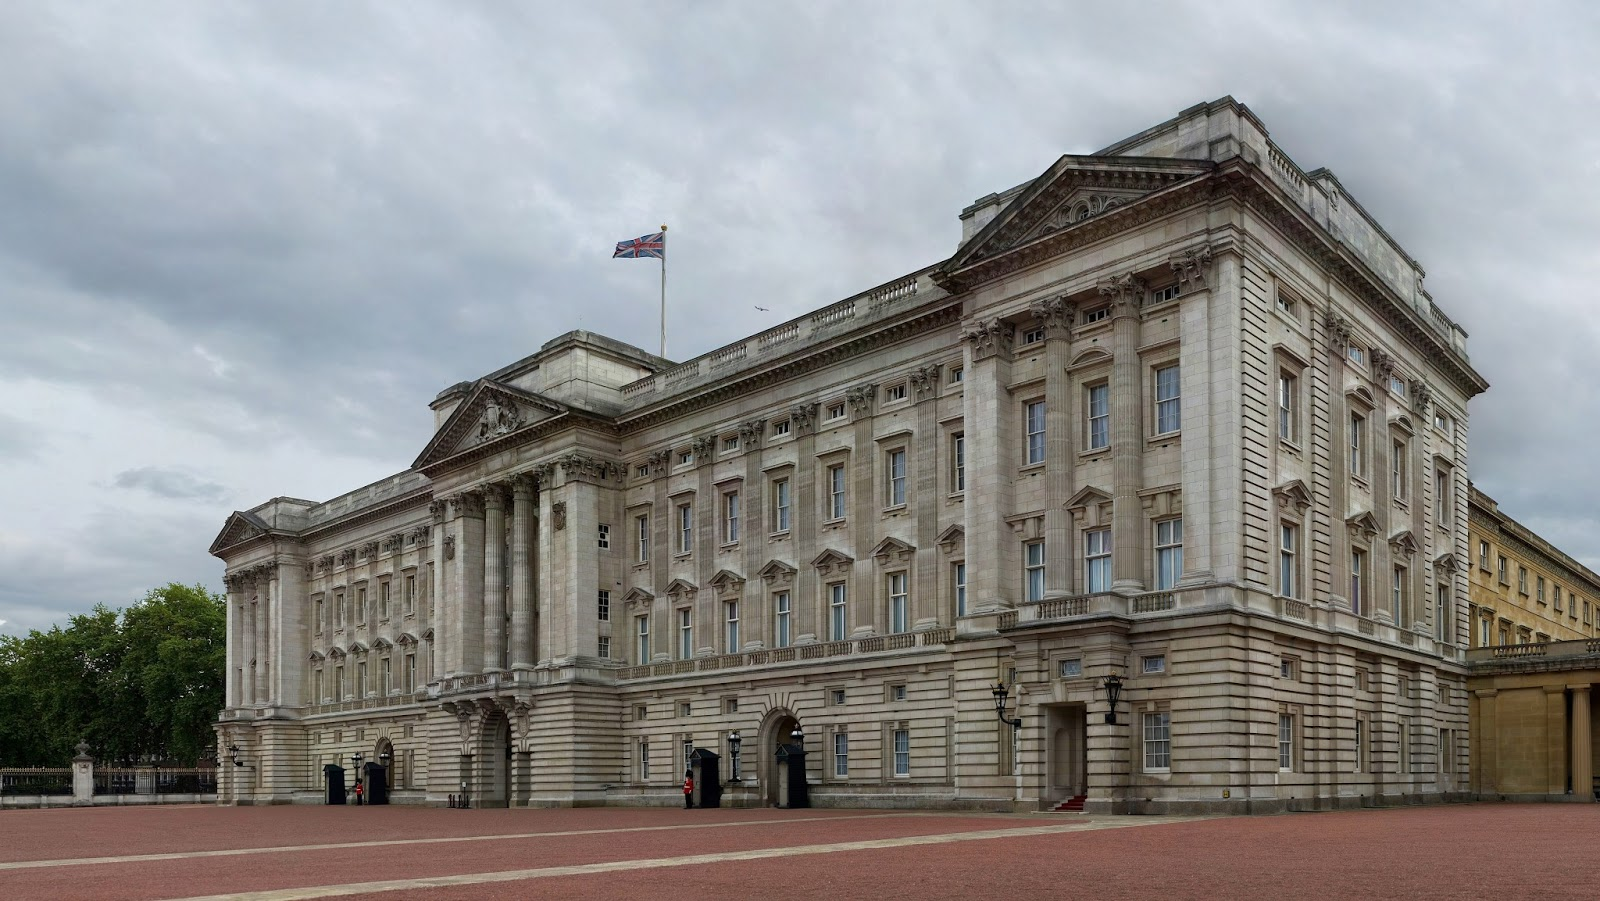 The Buckingham Palace Most Visited Spot London World